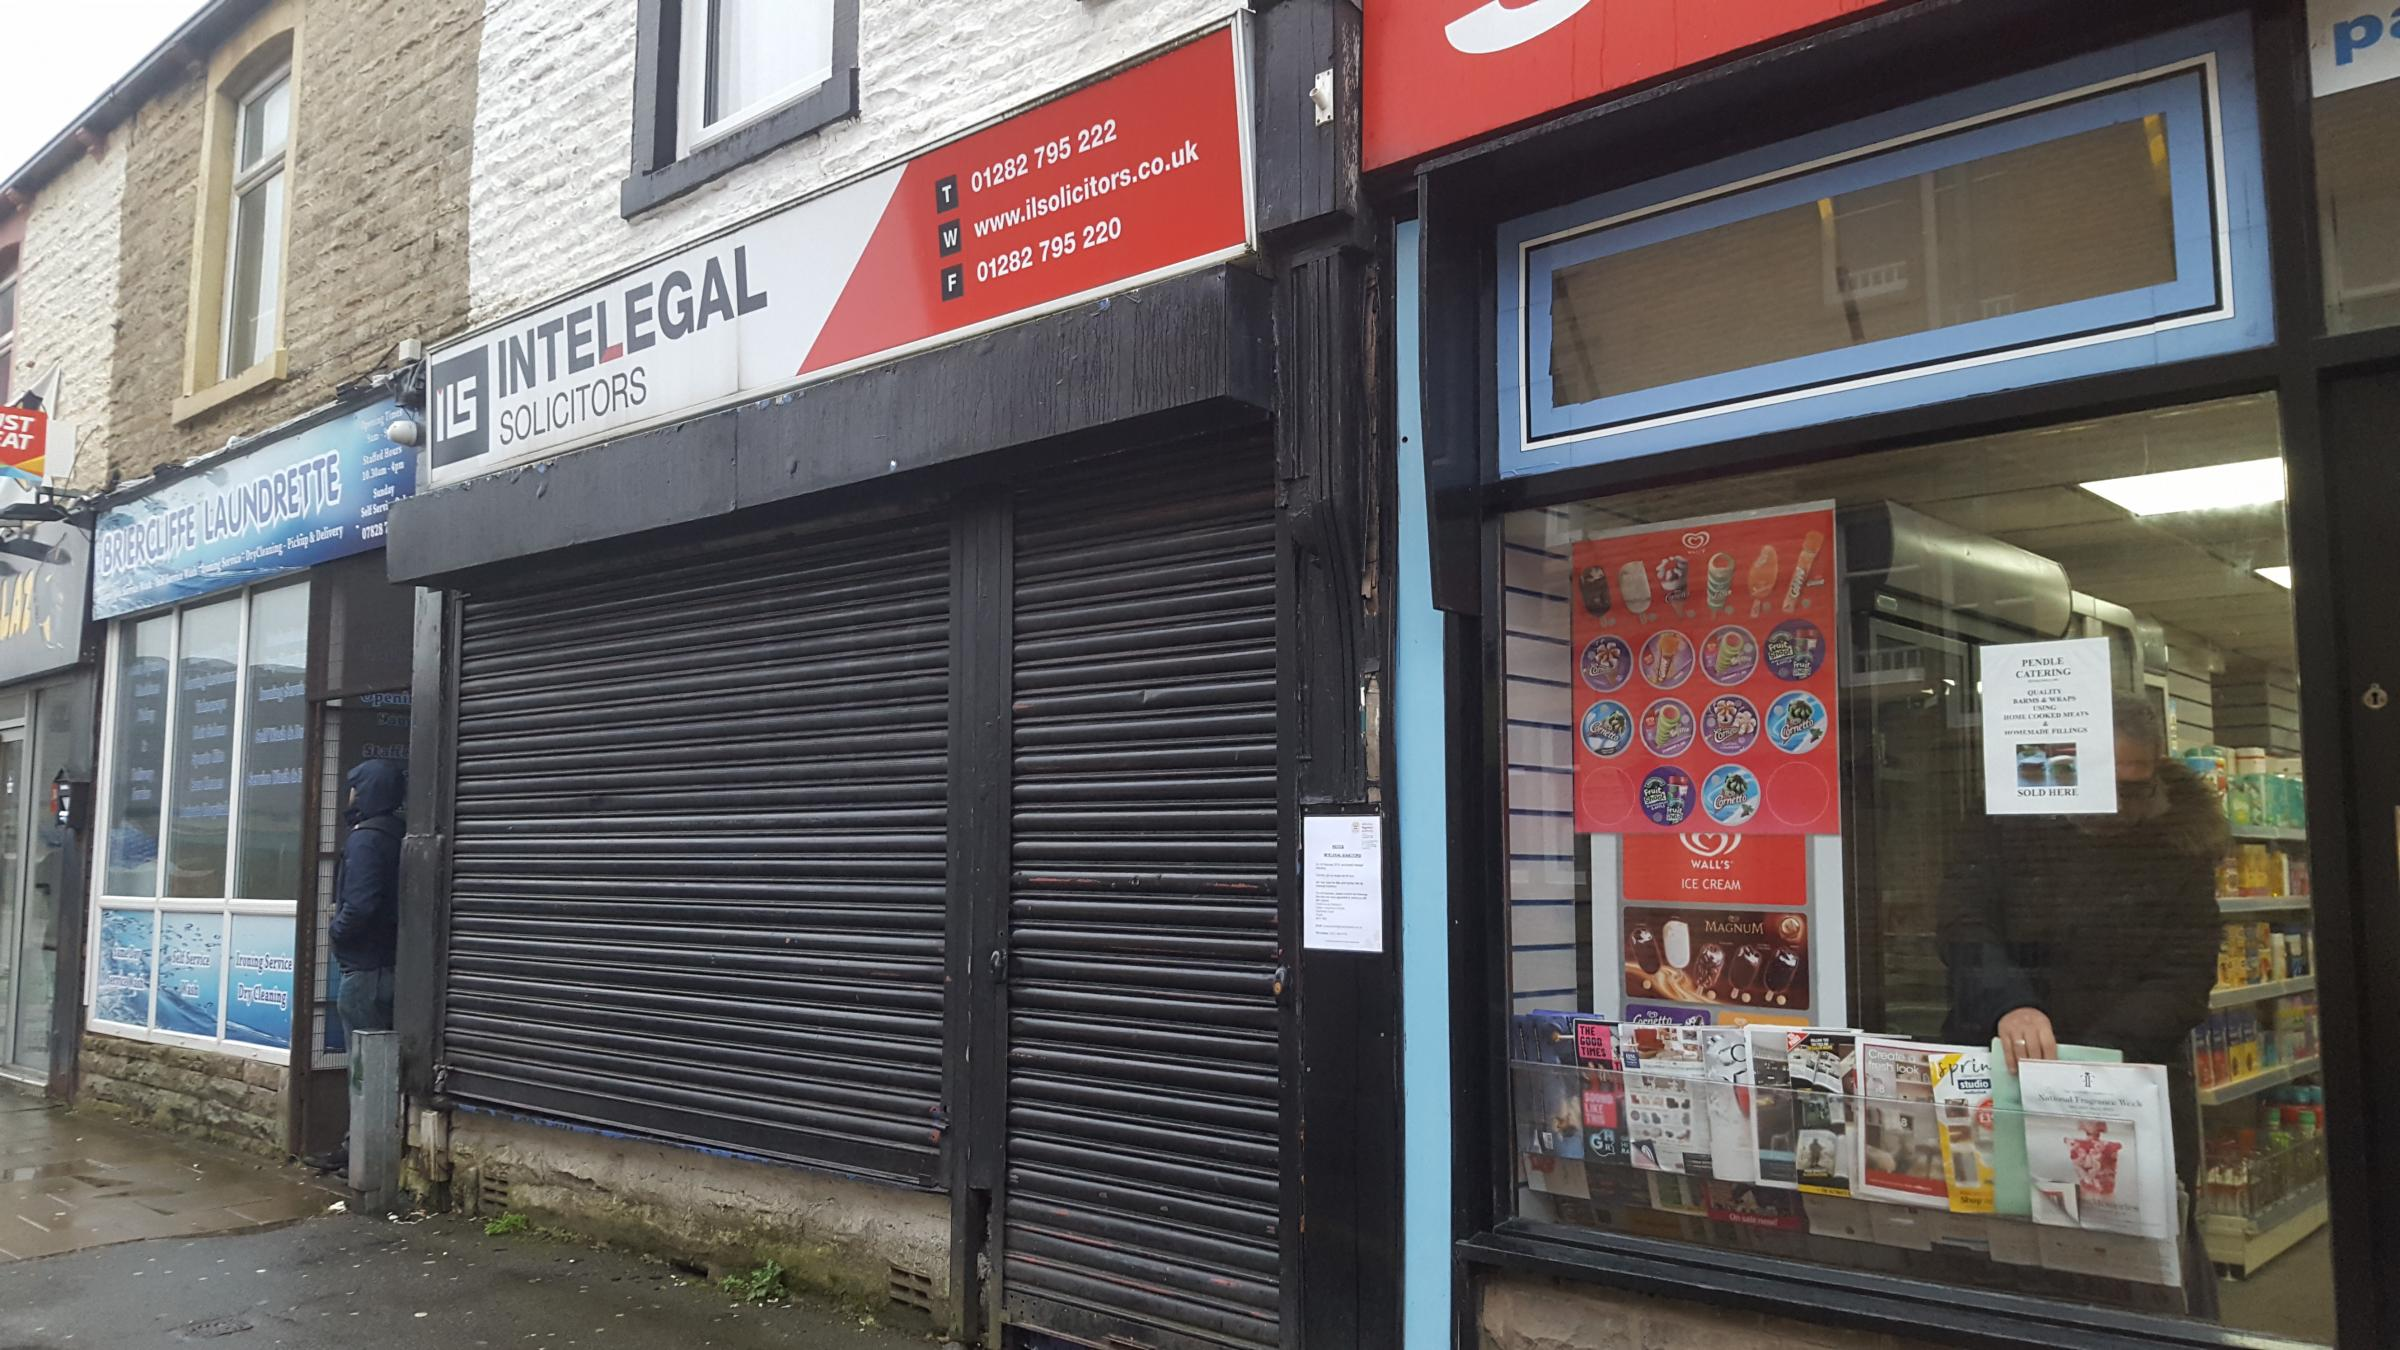 Intelegal, based in Briercliffe Road, Burnley